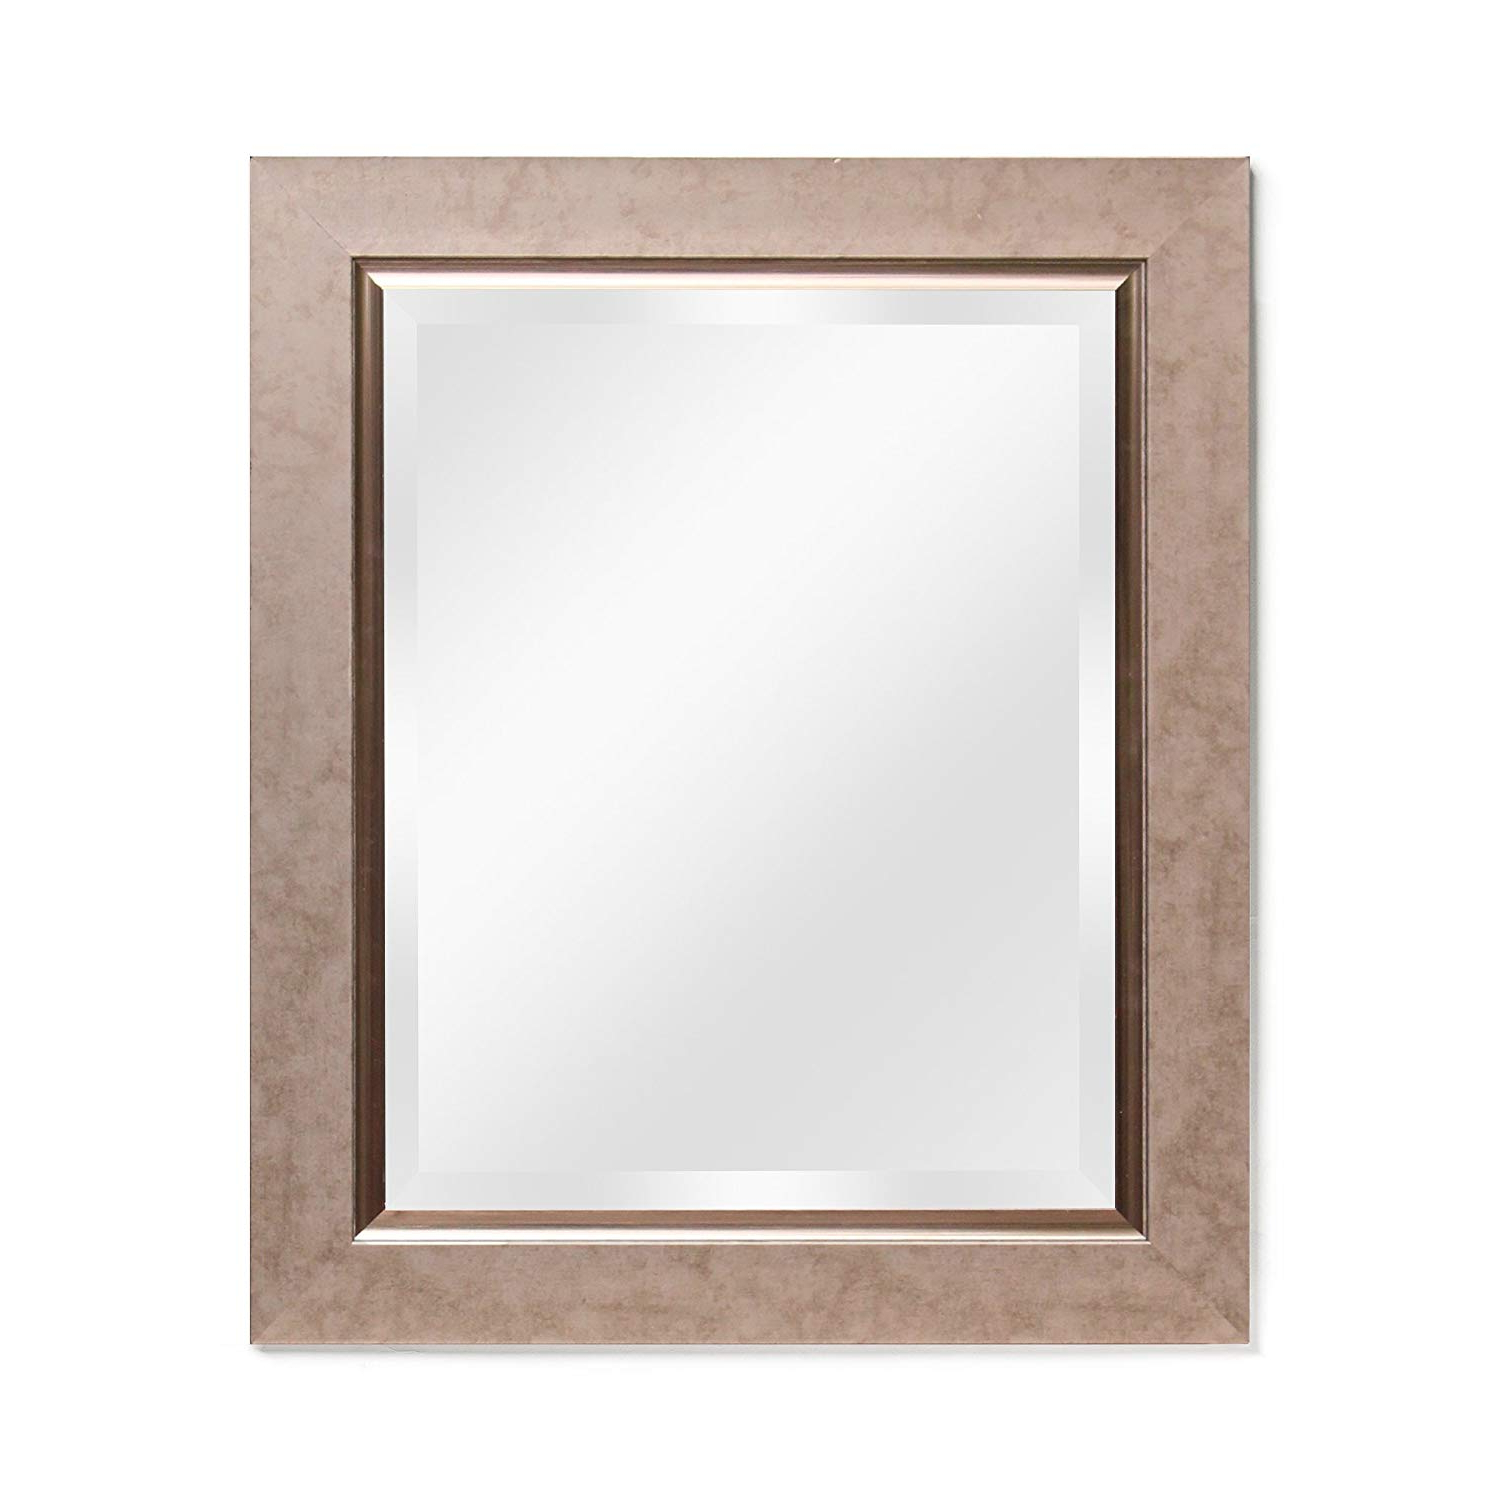 "Trendy Wall Mirror – Decorative Bathroom Mirrors Wall Mounted, Rustic Bronze  21""x25"" Overall Sizeecohome Throughout Decorative Bathroom Wall Mirrors (View 18 of 20)"